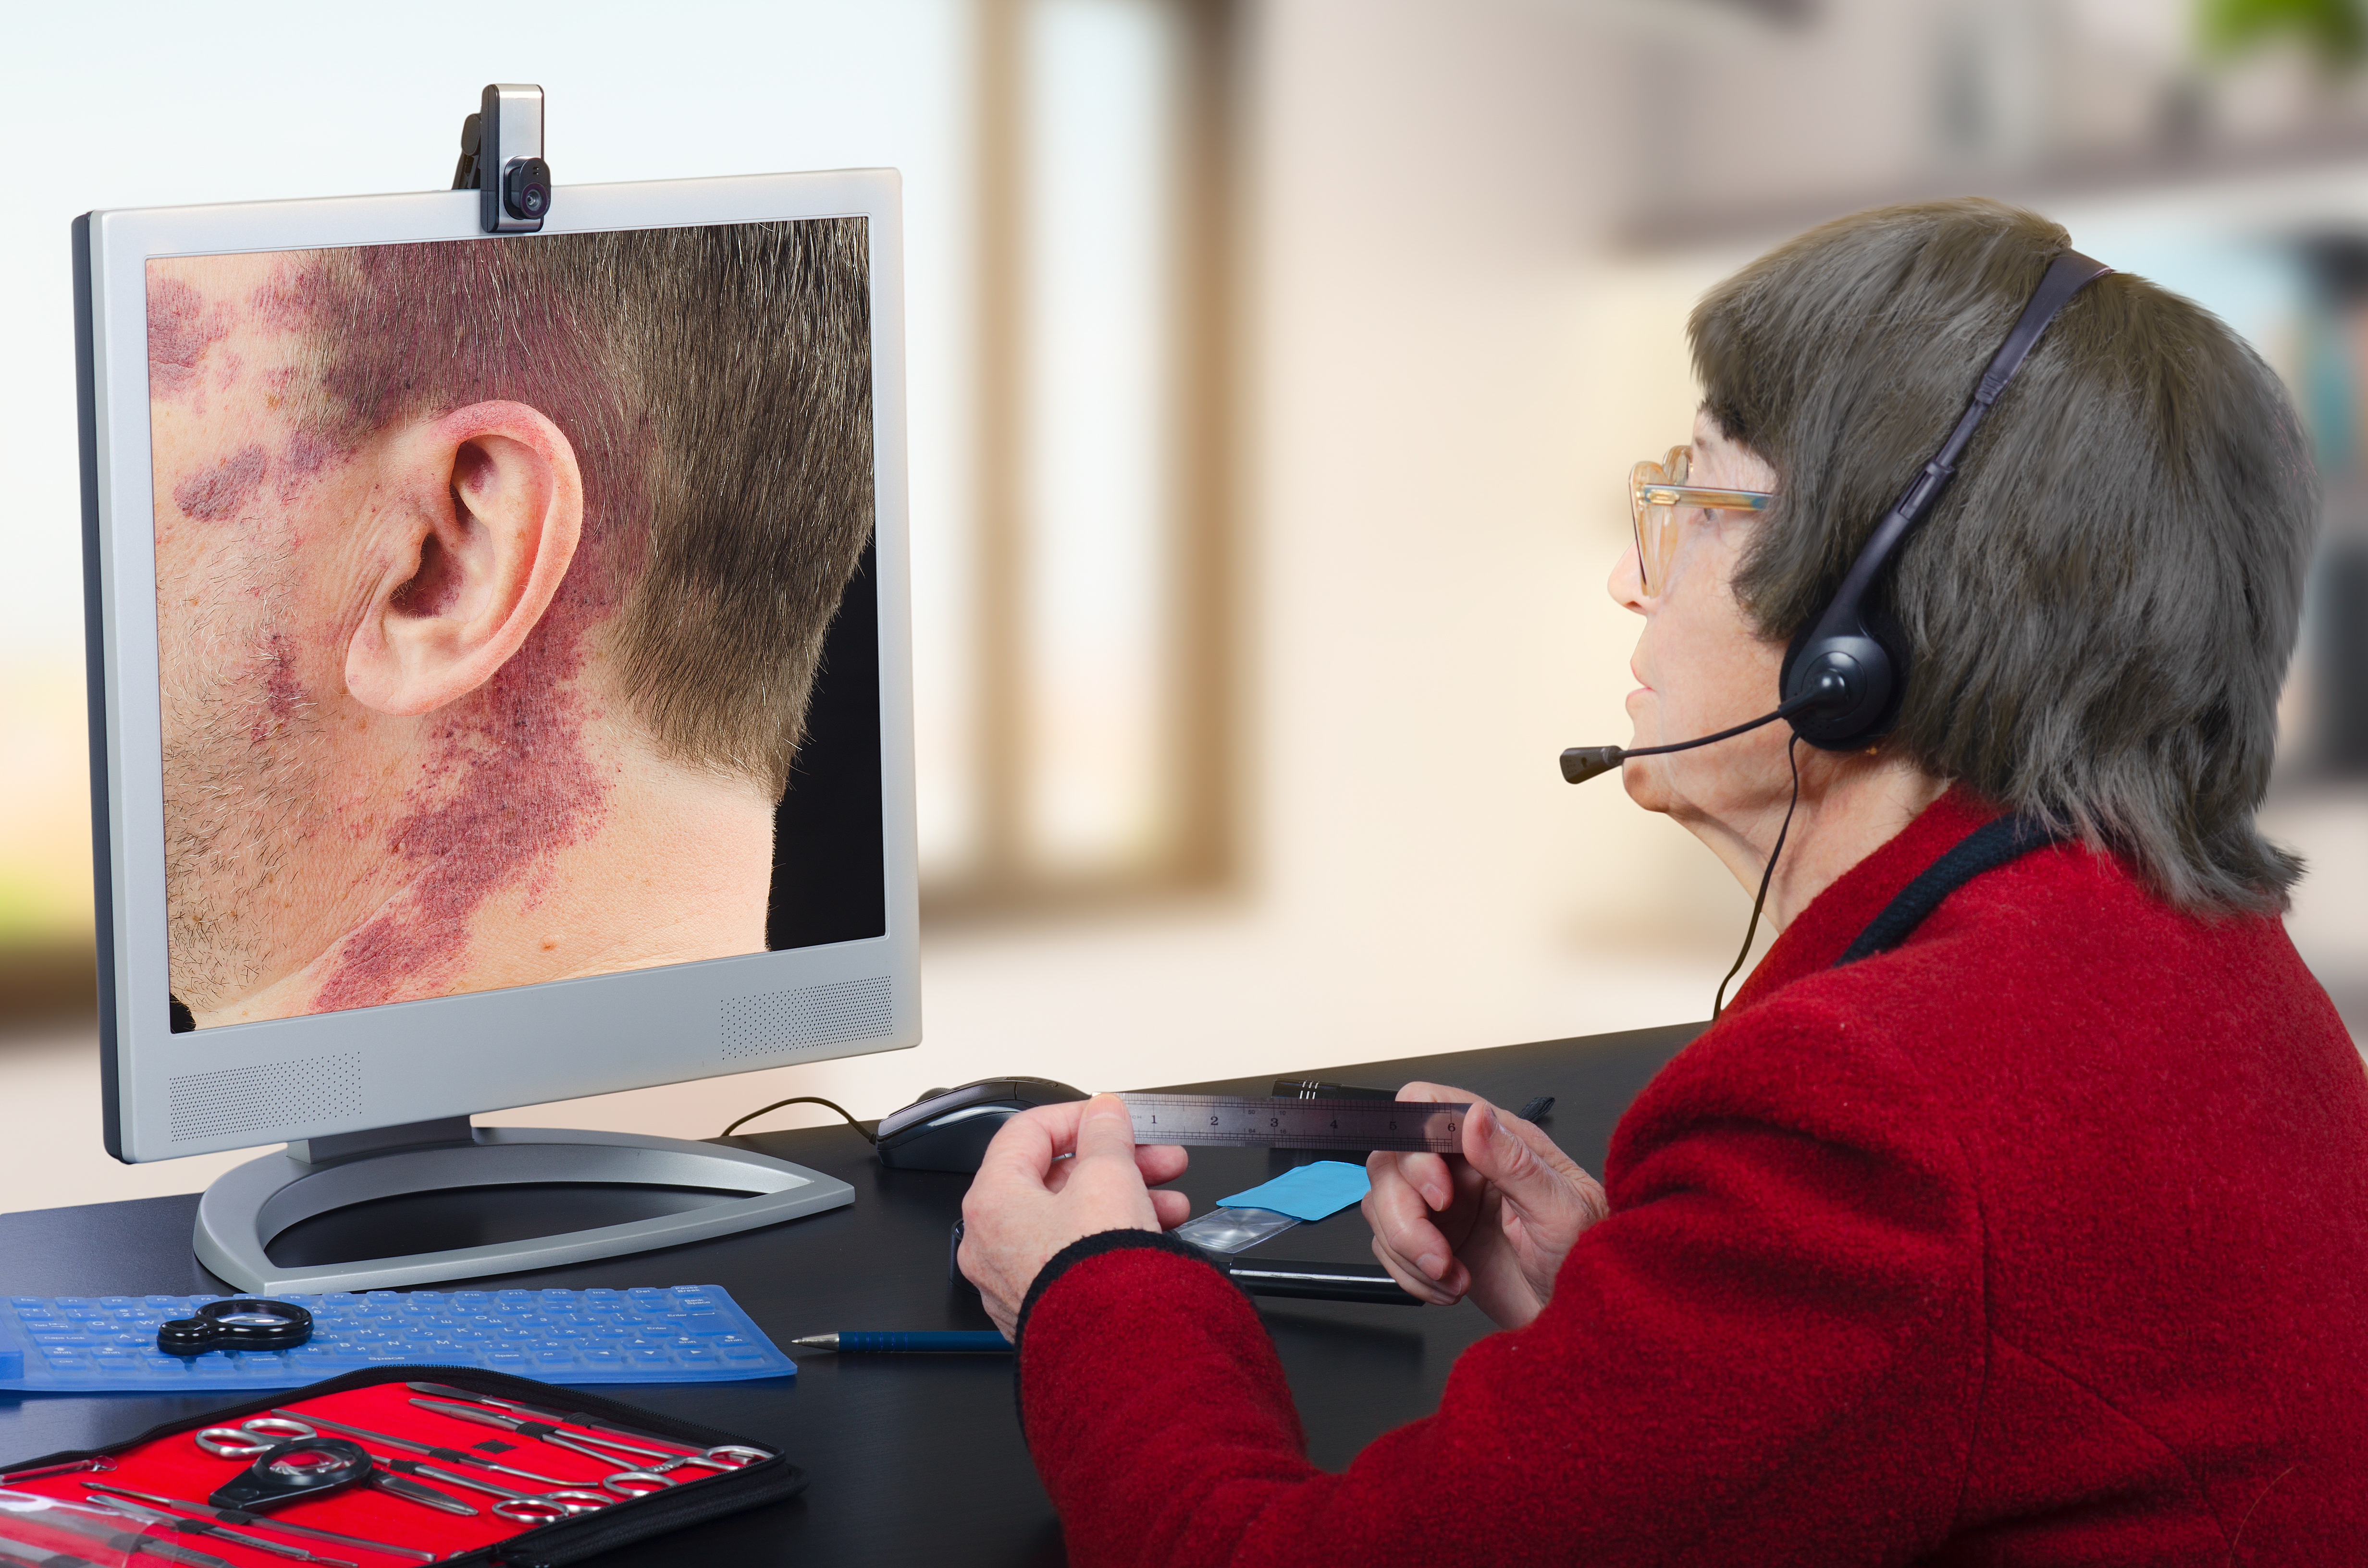 Telemedicine dermatologist in headset observes at birthmark on monitor attentively